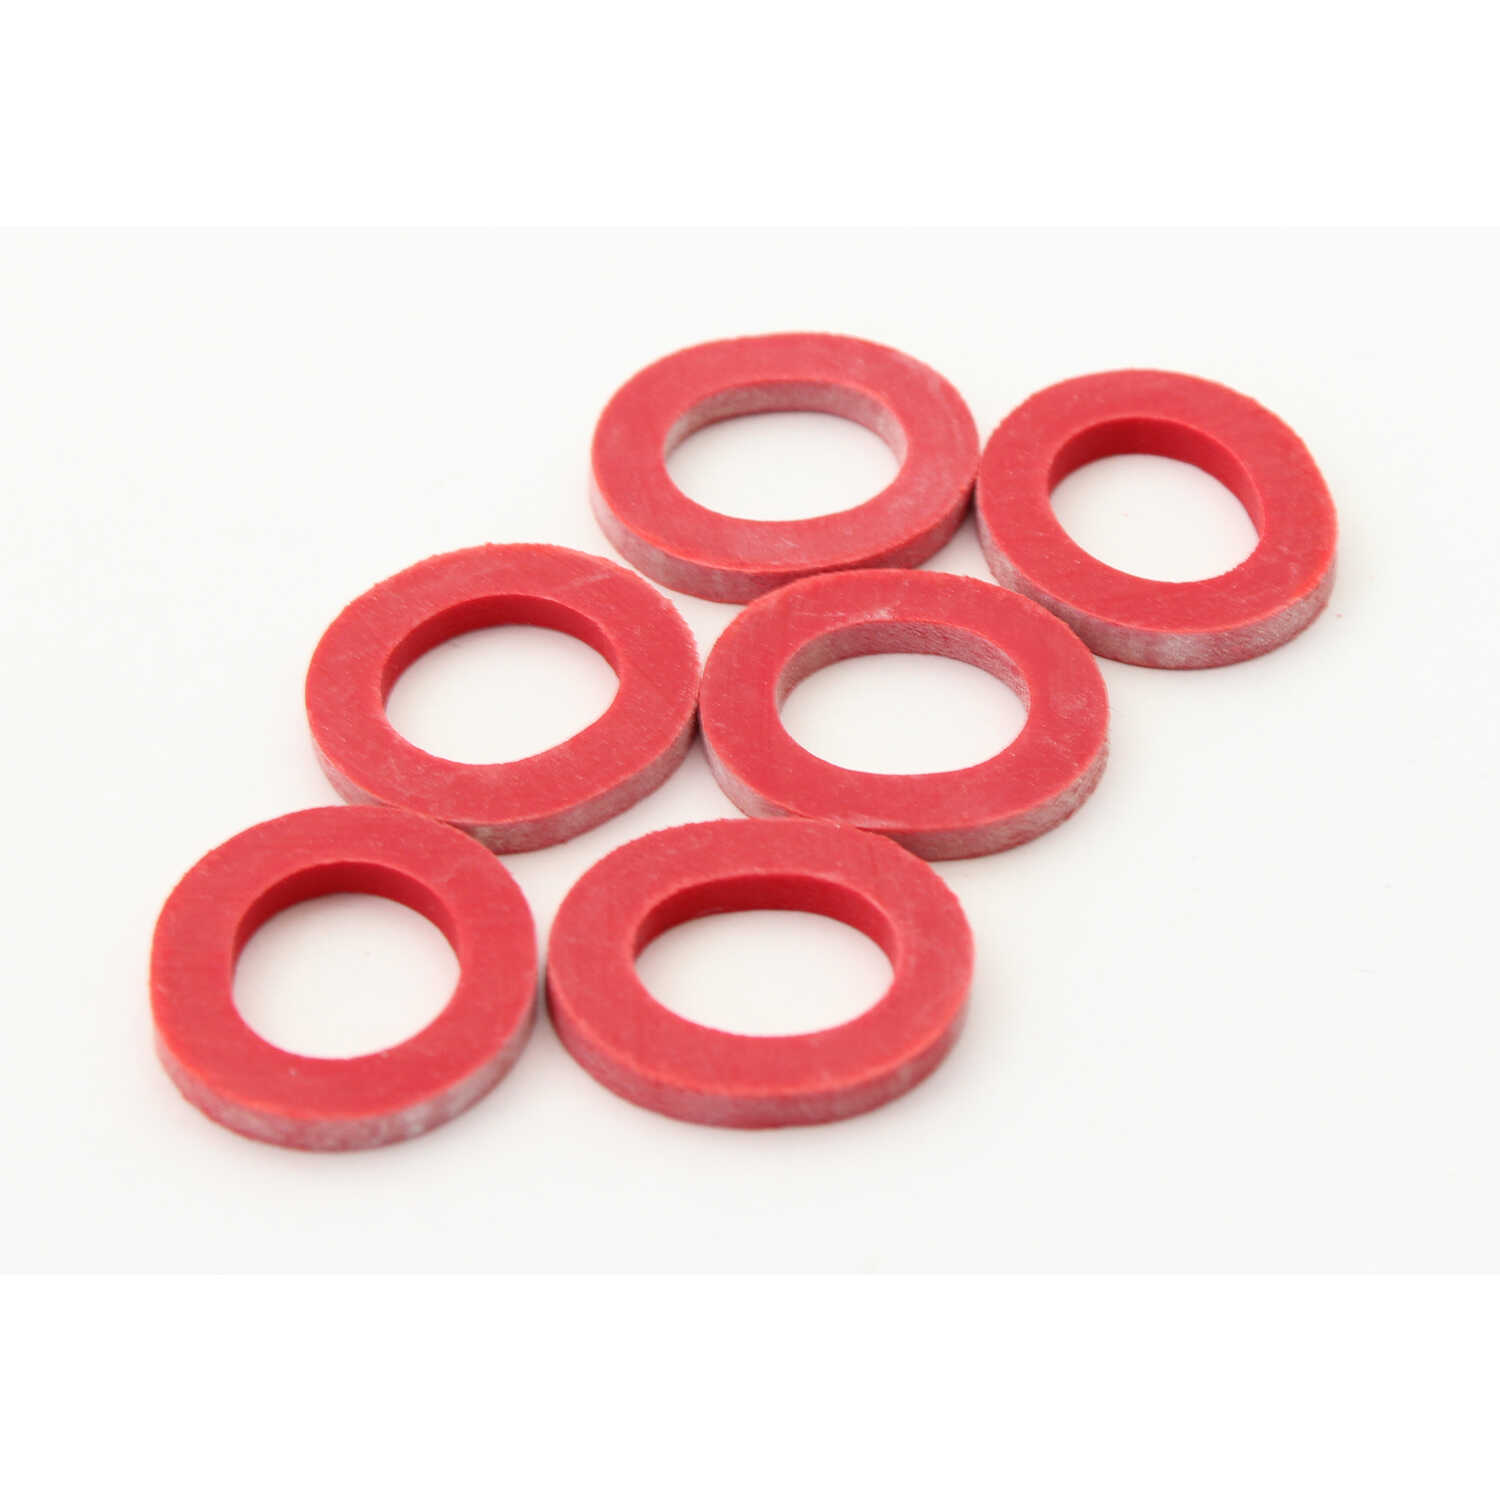 Ace  3/4 in. Dia. Rubber  Garden Hose Coupling Washer  6